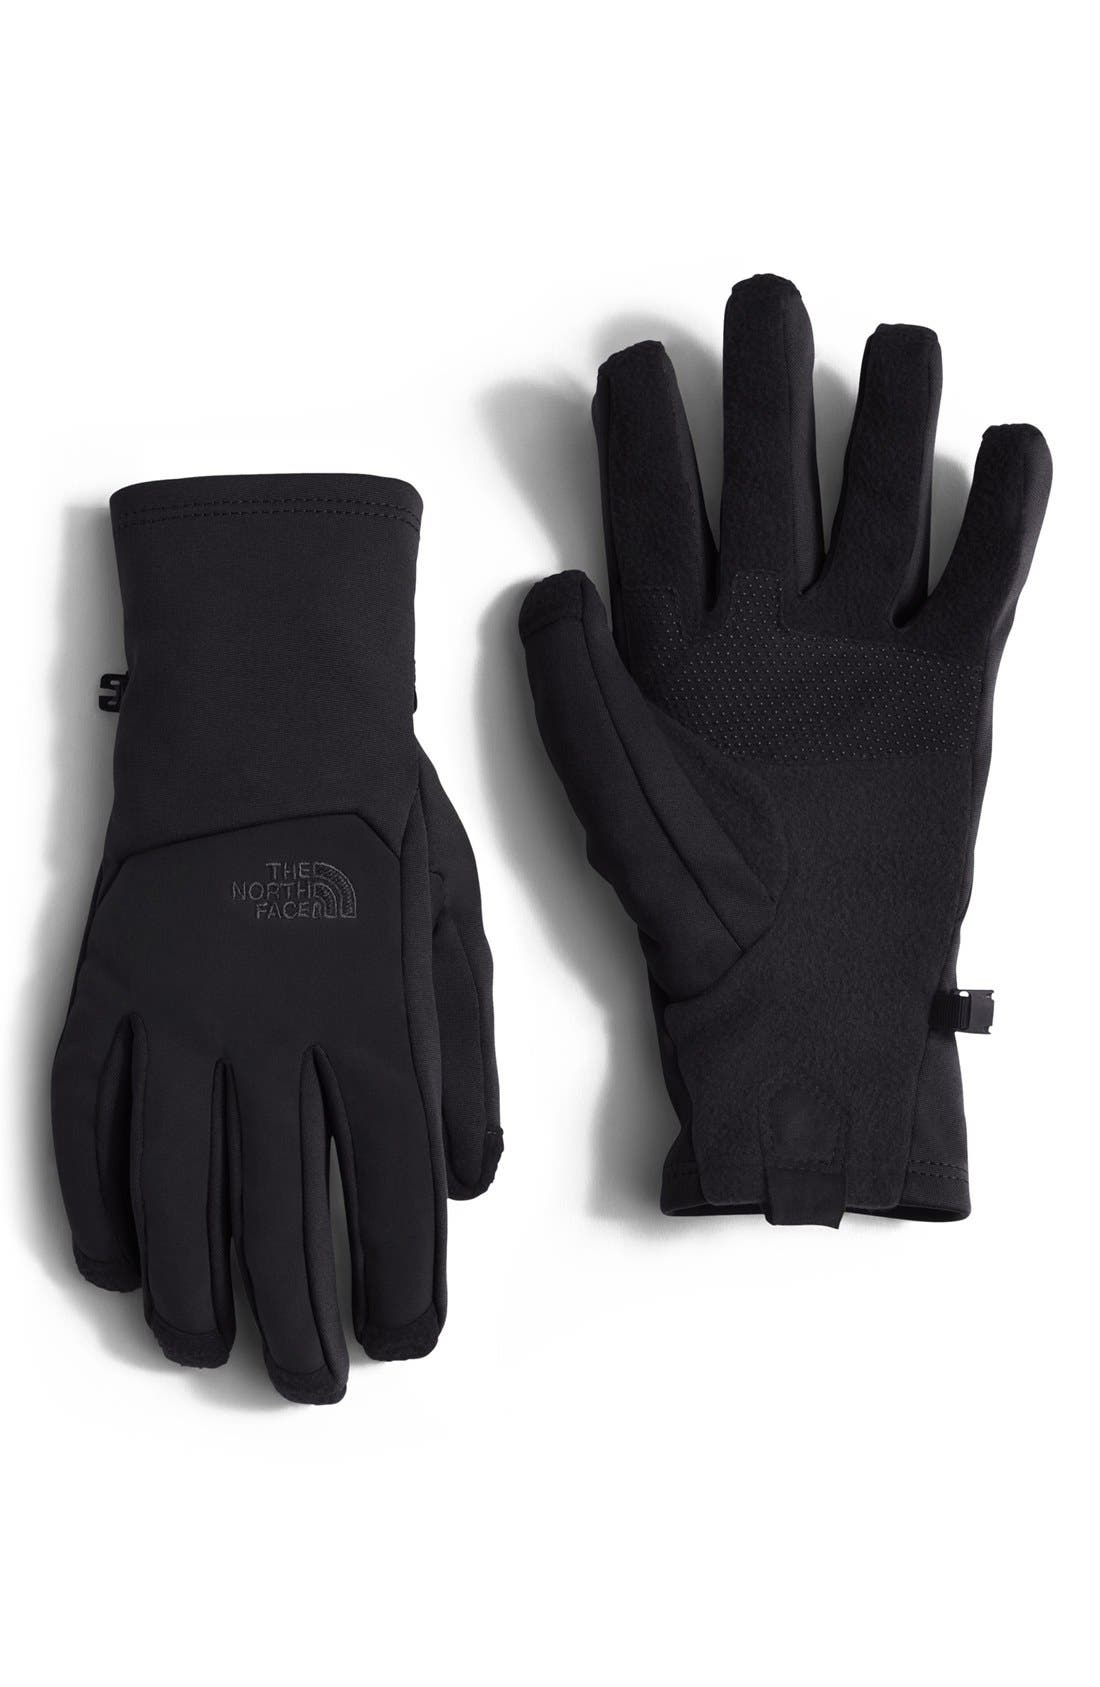 'CanyonWall E-Tip' Tech Gloves,                         Main,                         color, North Face Black